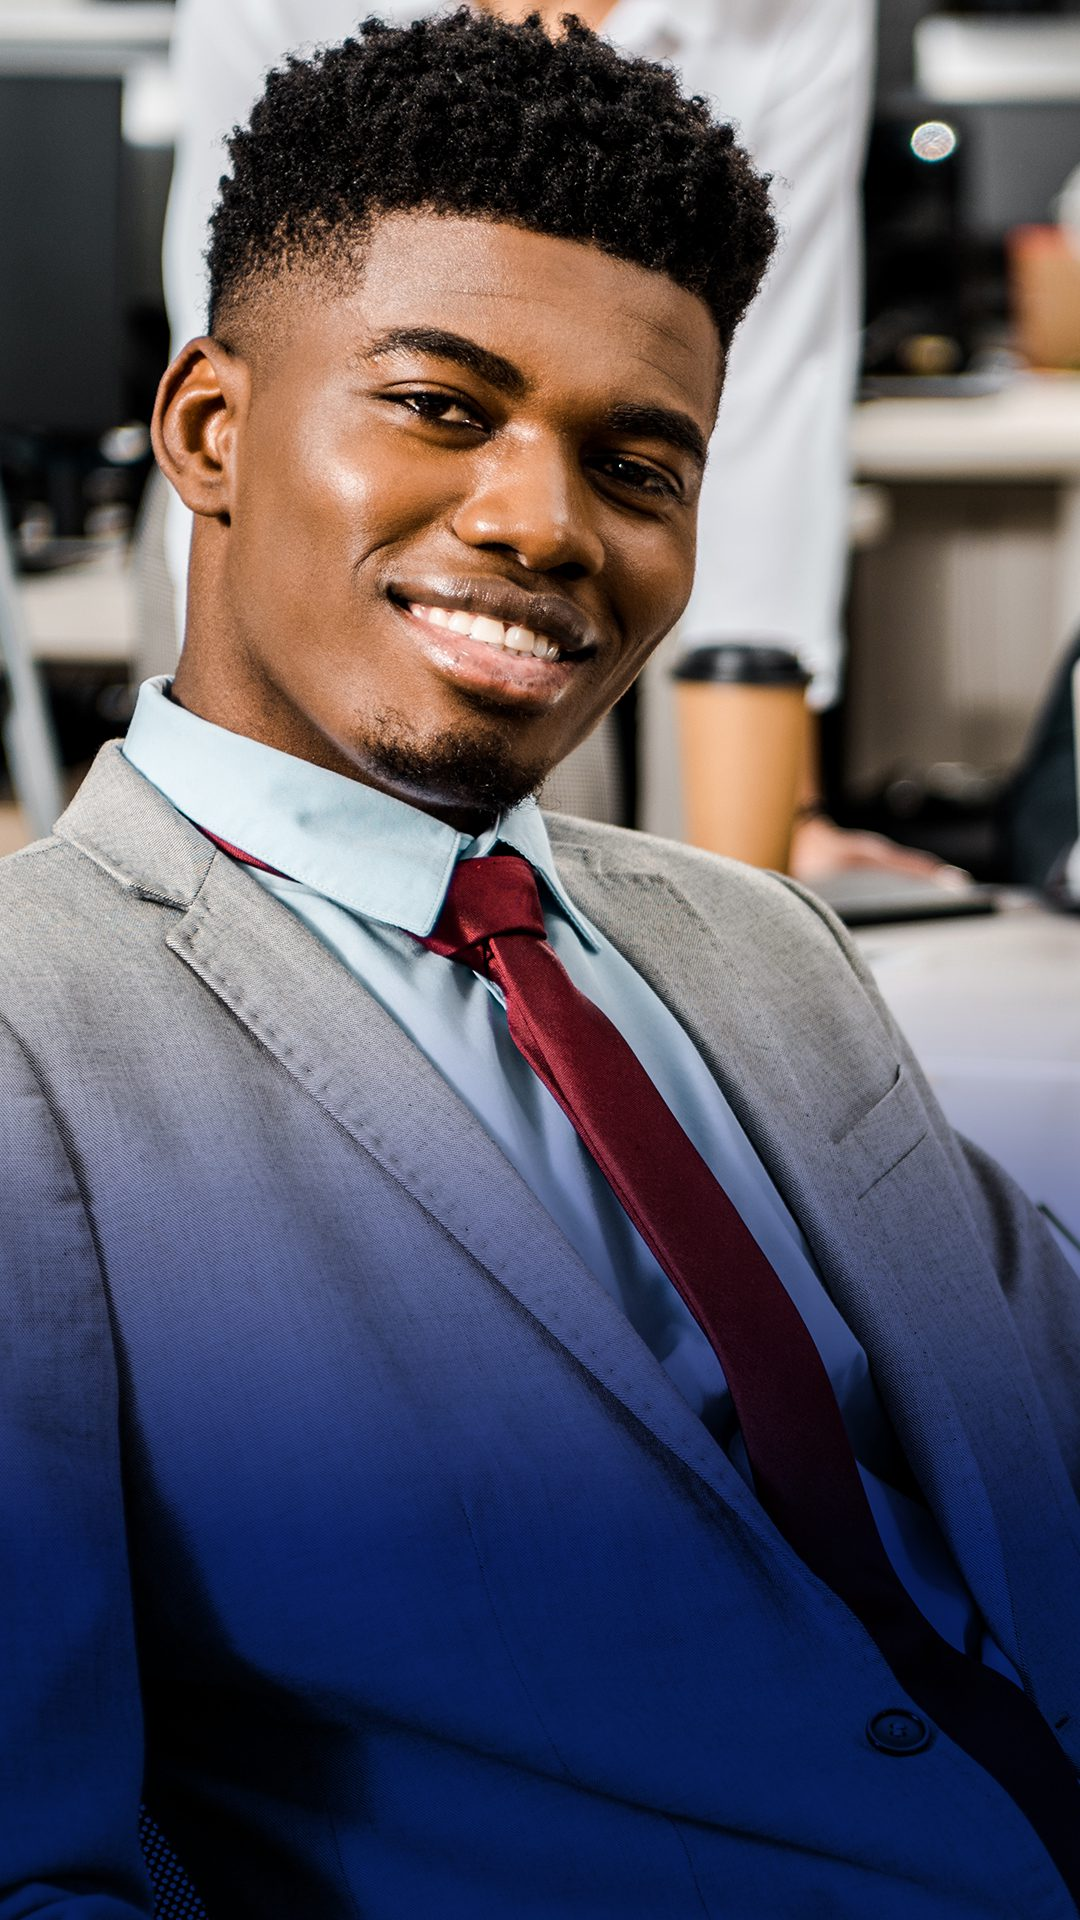 Black Man with Red Tie